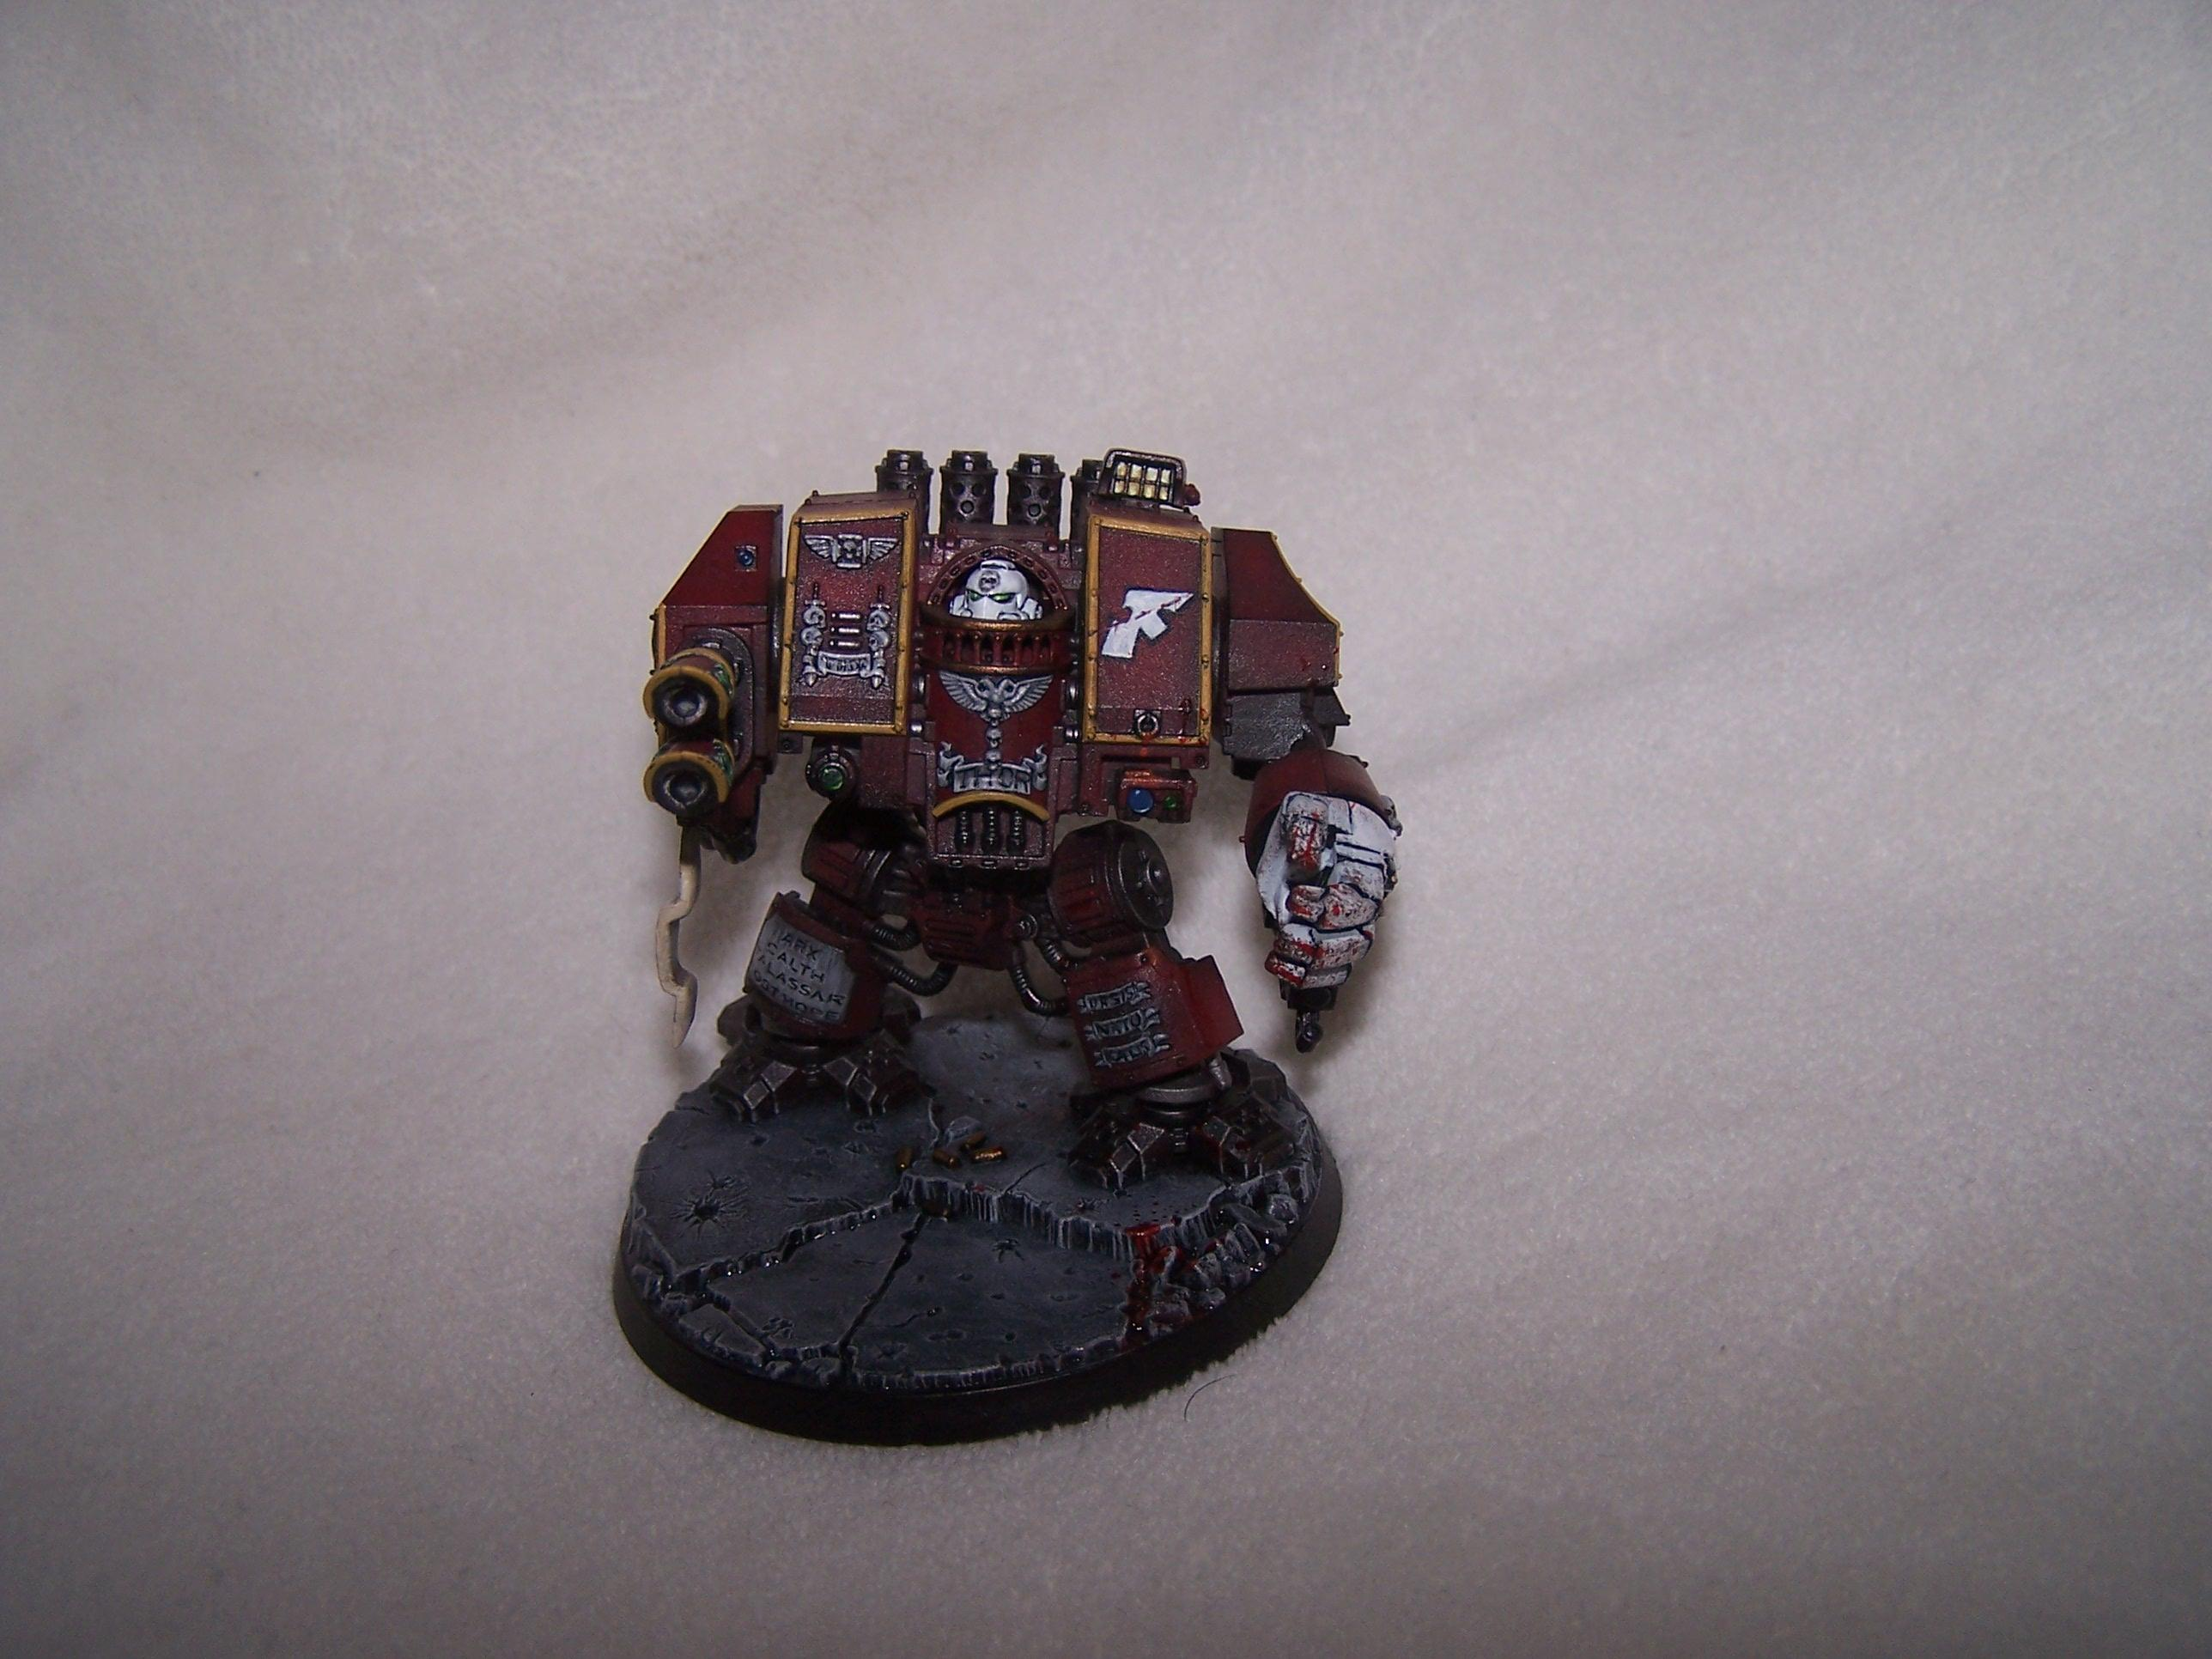 Dreadnought, Emperor's Wings, Space Marines, Venerable Dreadnought